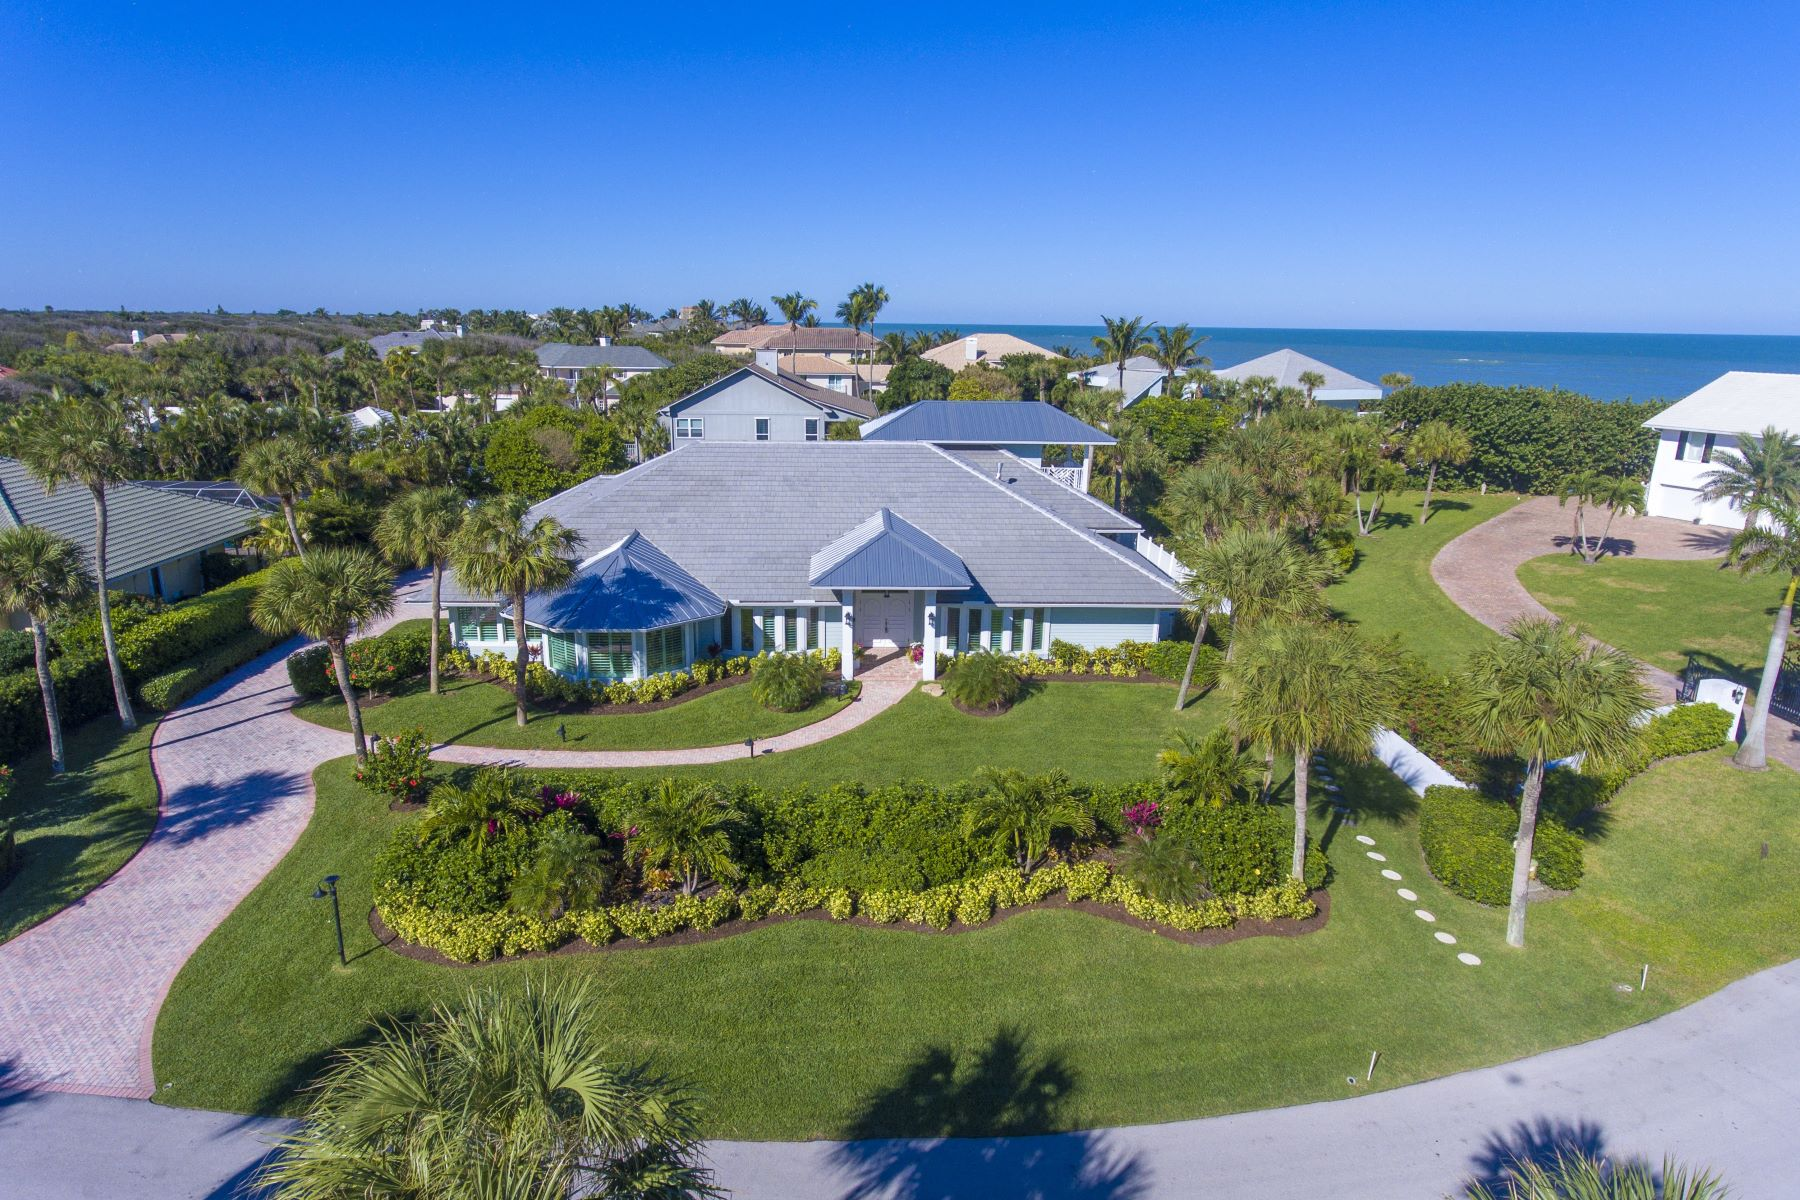 Property for Sale at 909 Holoma Drive, Vero Beach, FL 909 Holoma Drive Vero Beach, Florida 32963 United States